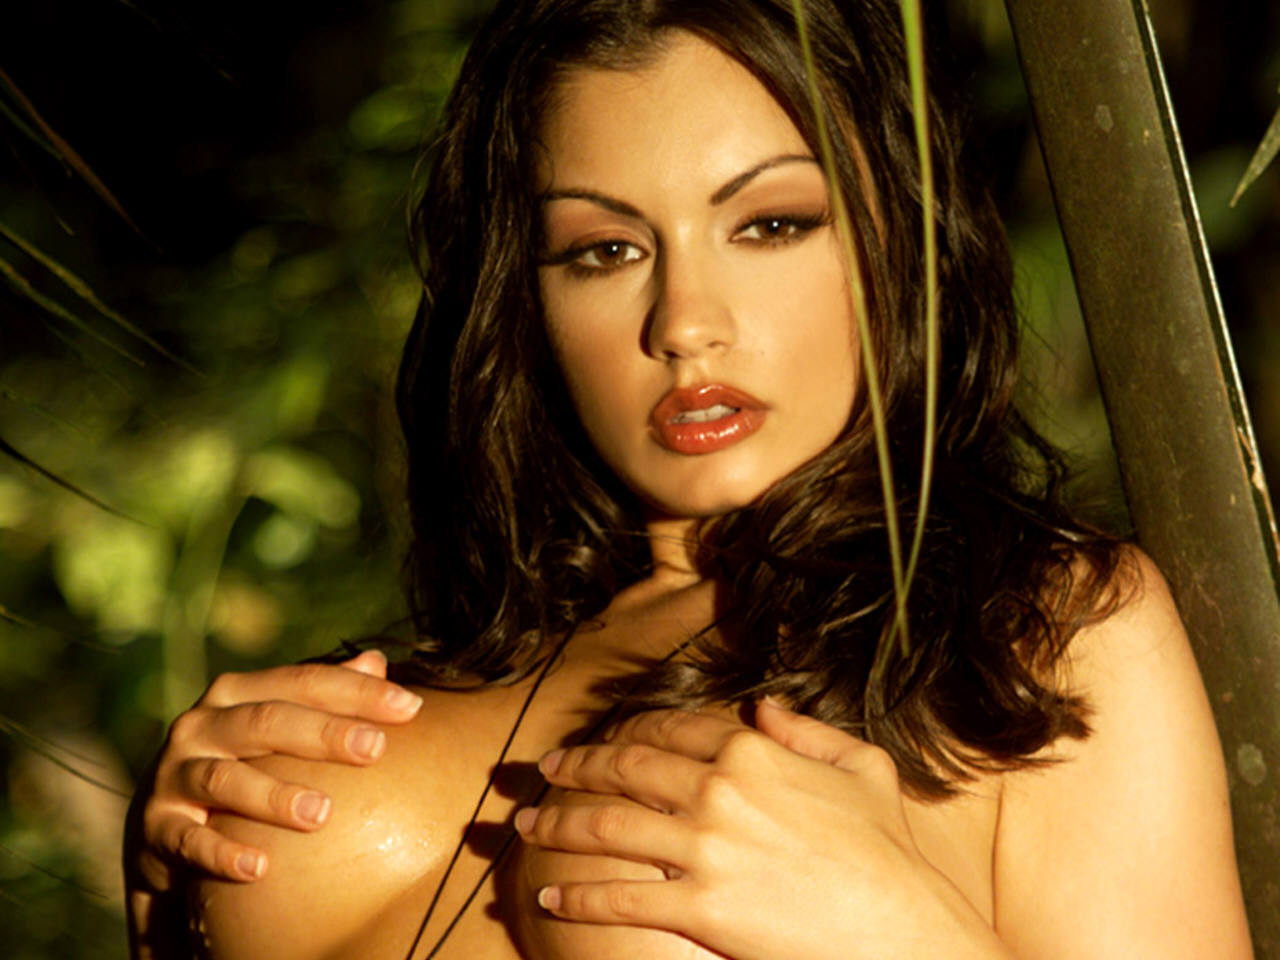 Hot Aria Giovanni | Girls Pictures | Top Models | Hot Actress | Hot ...: prettygirlspics.blogspot.com/2011/09/hot-aria-giovanni.html